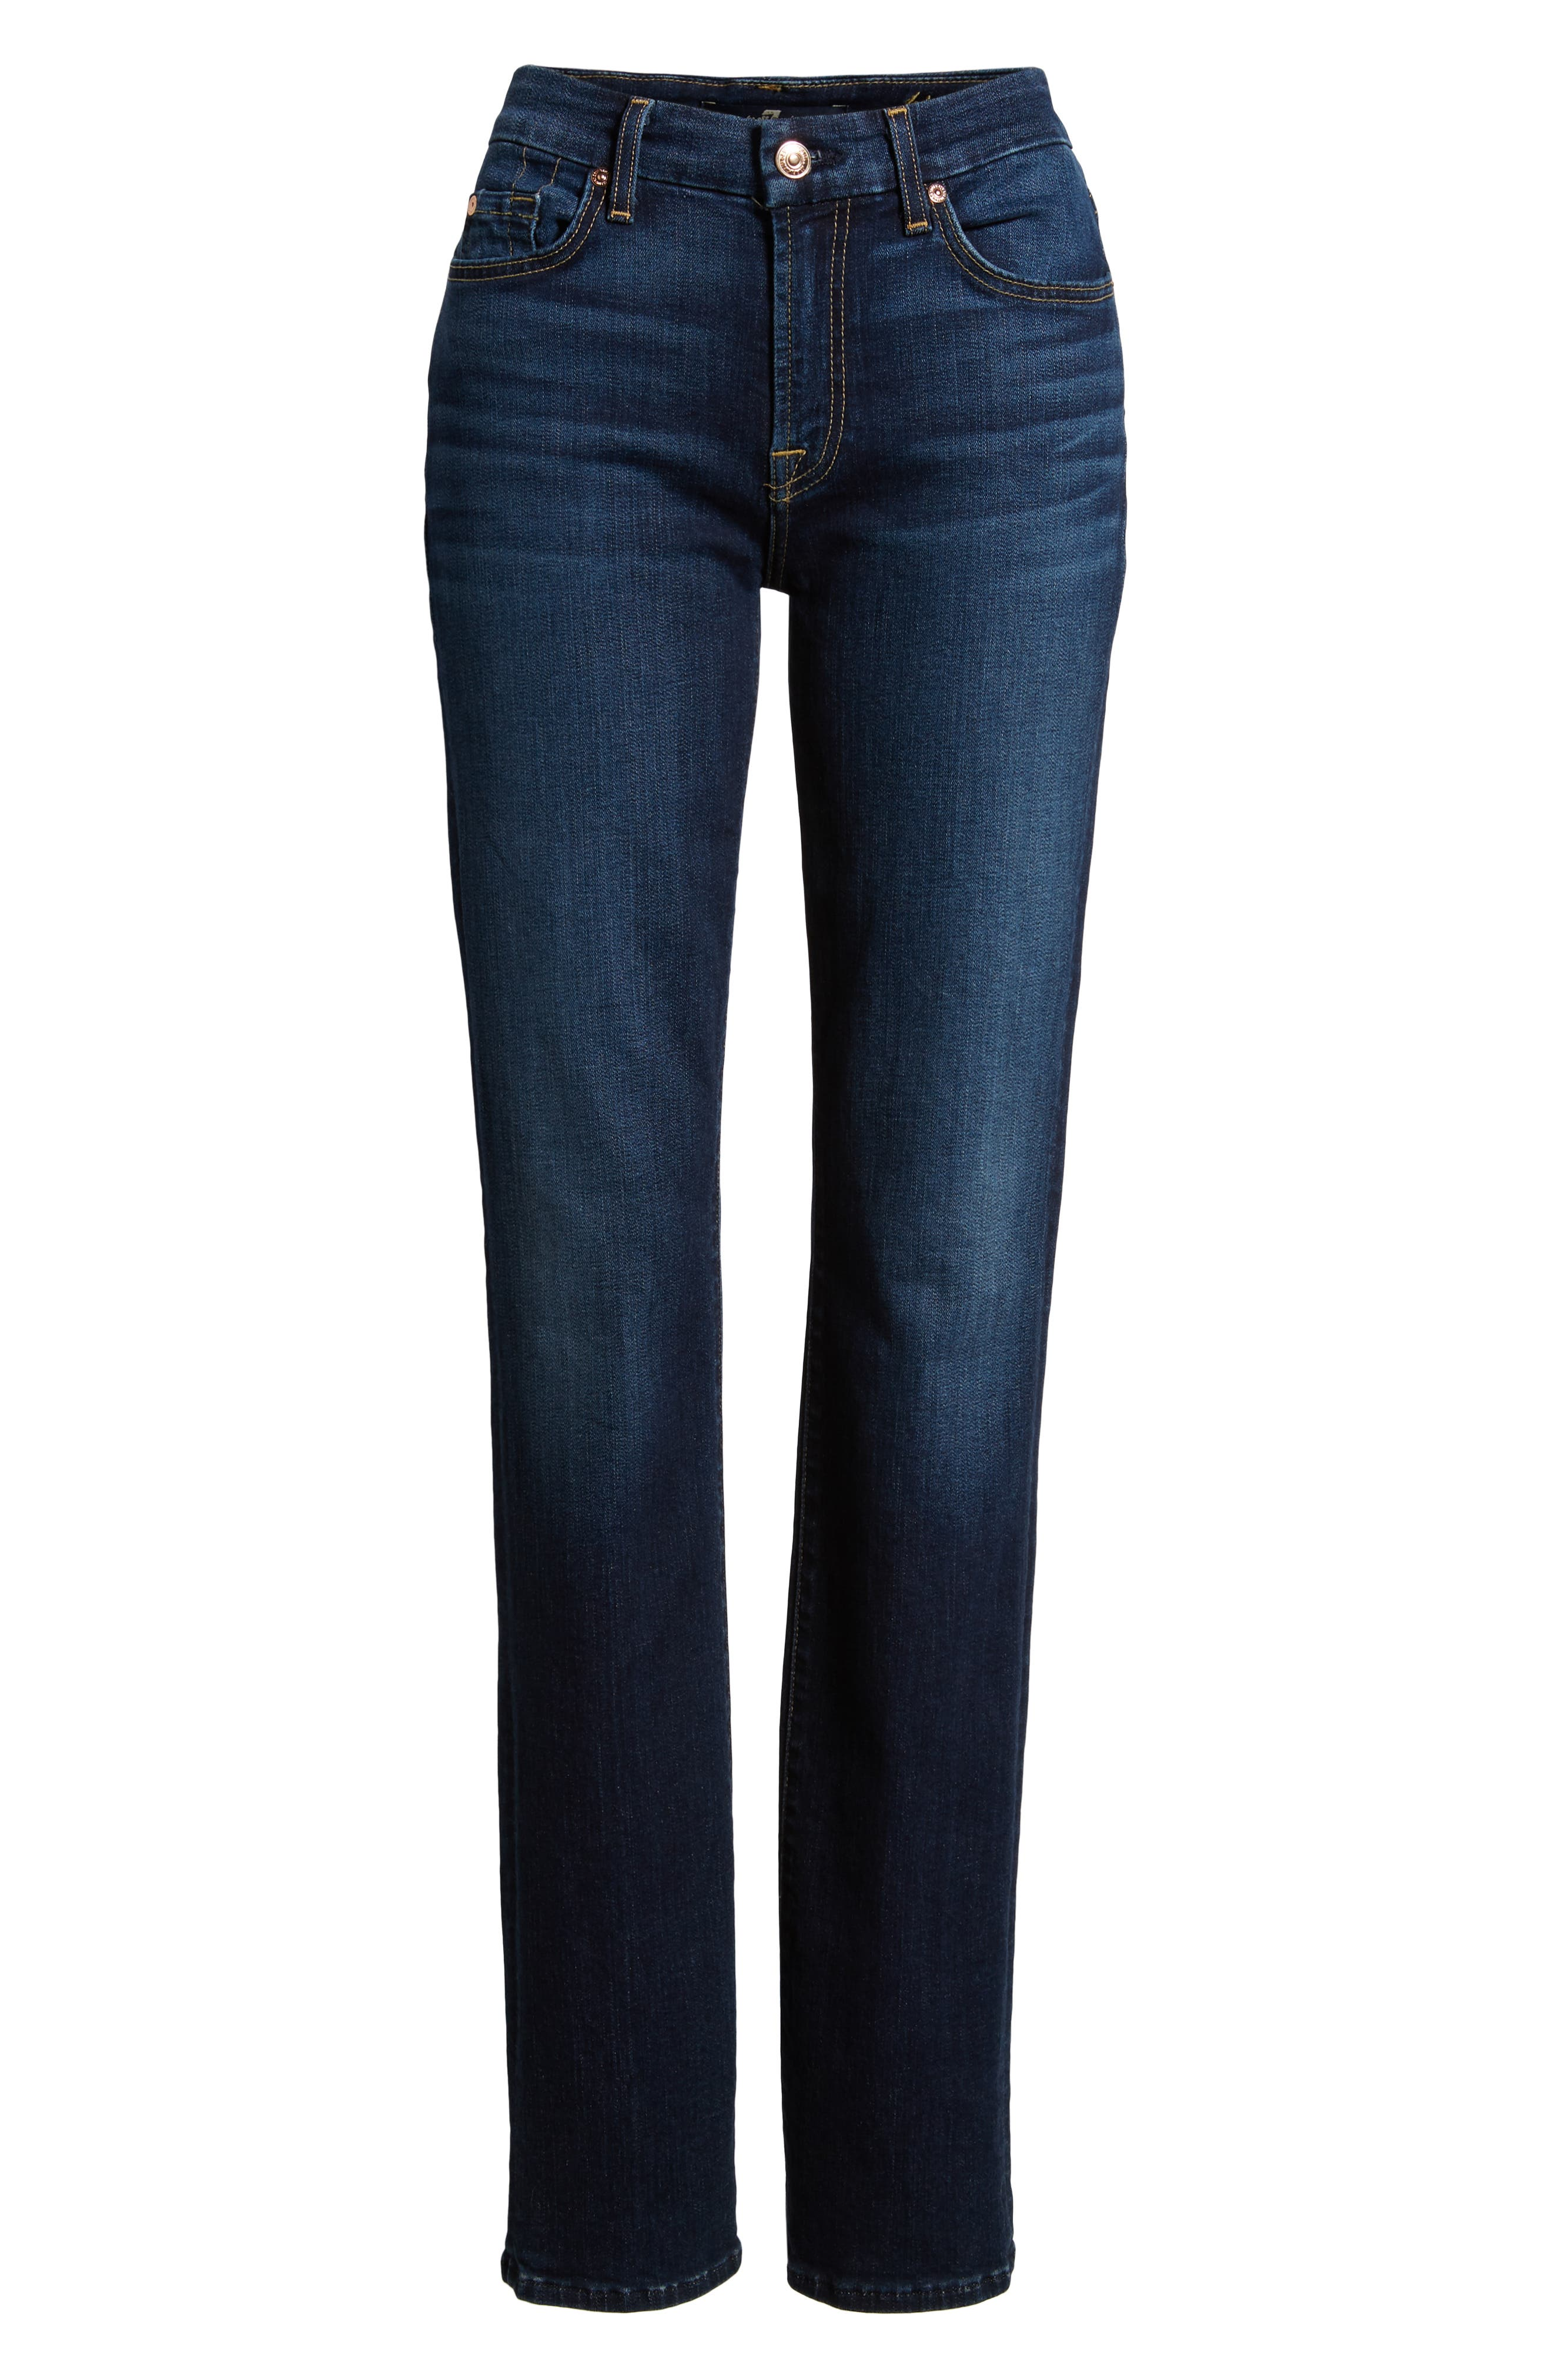 7 FOR ALL MANKIND<SUP>®</SUP>, b(air) Kimmie Straight Leg Jeans, Alternate thumbnail 7, color, AUTHENTIC FATE